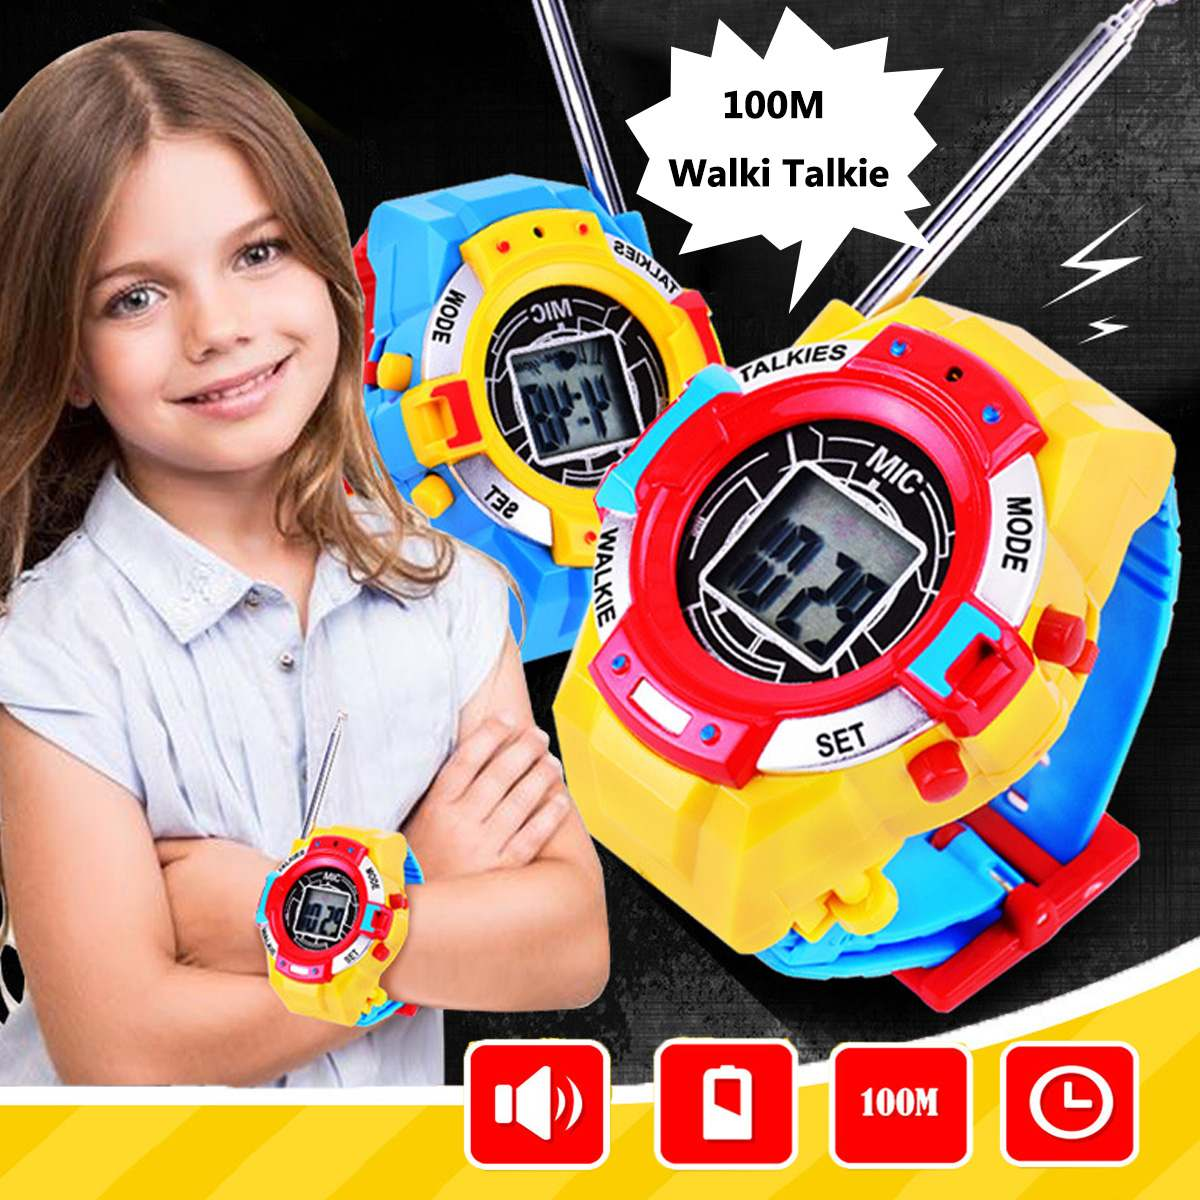 2Pcs/Pair Novelty 7in1 Kids Toys Watch Walkie-talkie Intercom Toys Outdoor Interaction Battle Game